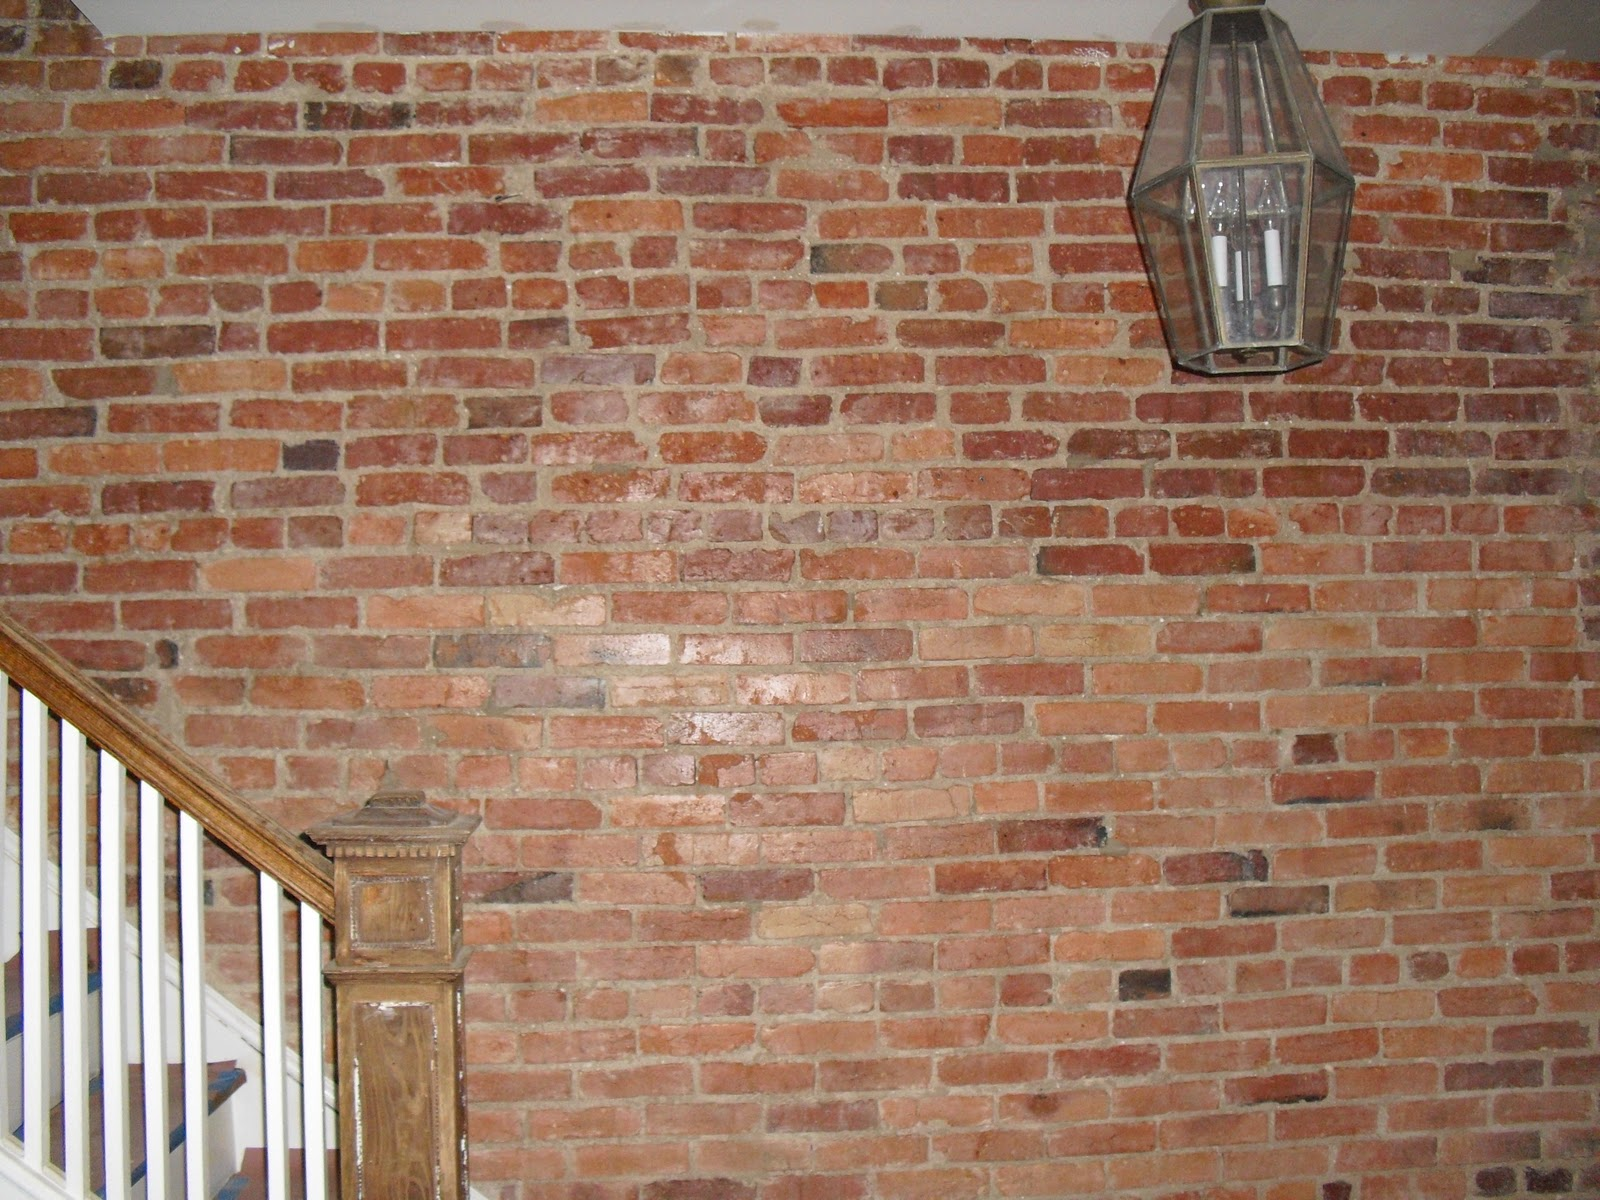 Top 28 Brick Wall Sealant Services Eagle Ridge Contracting Inc Finished Brick Wall After